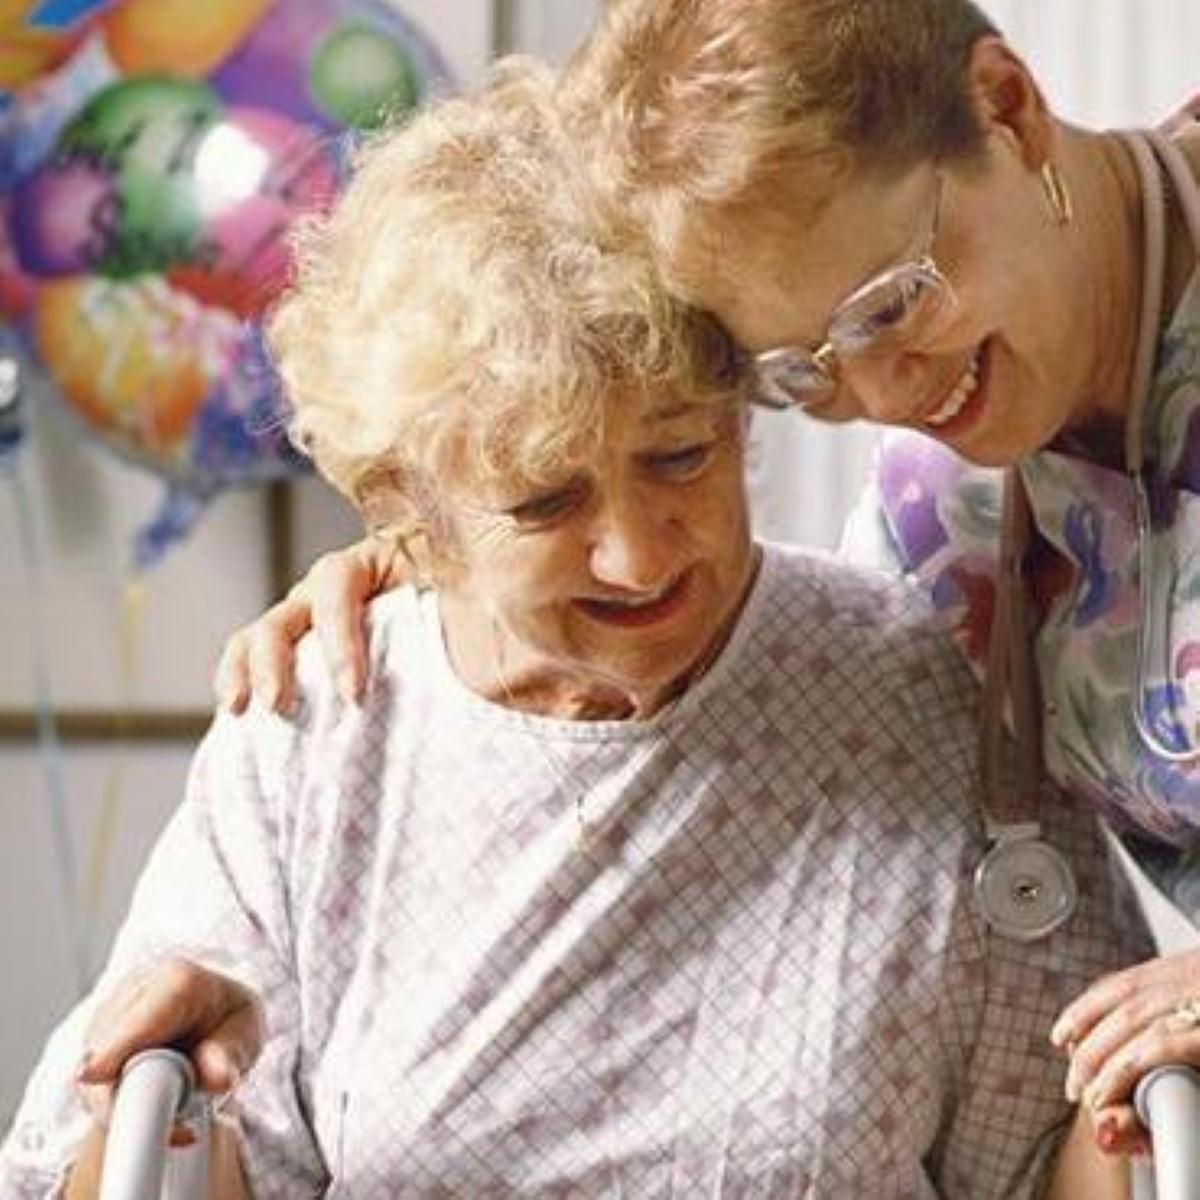 Govt 'must create fairer care system'